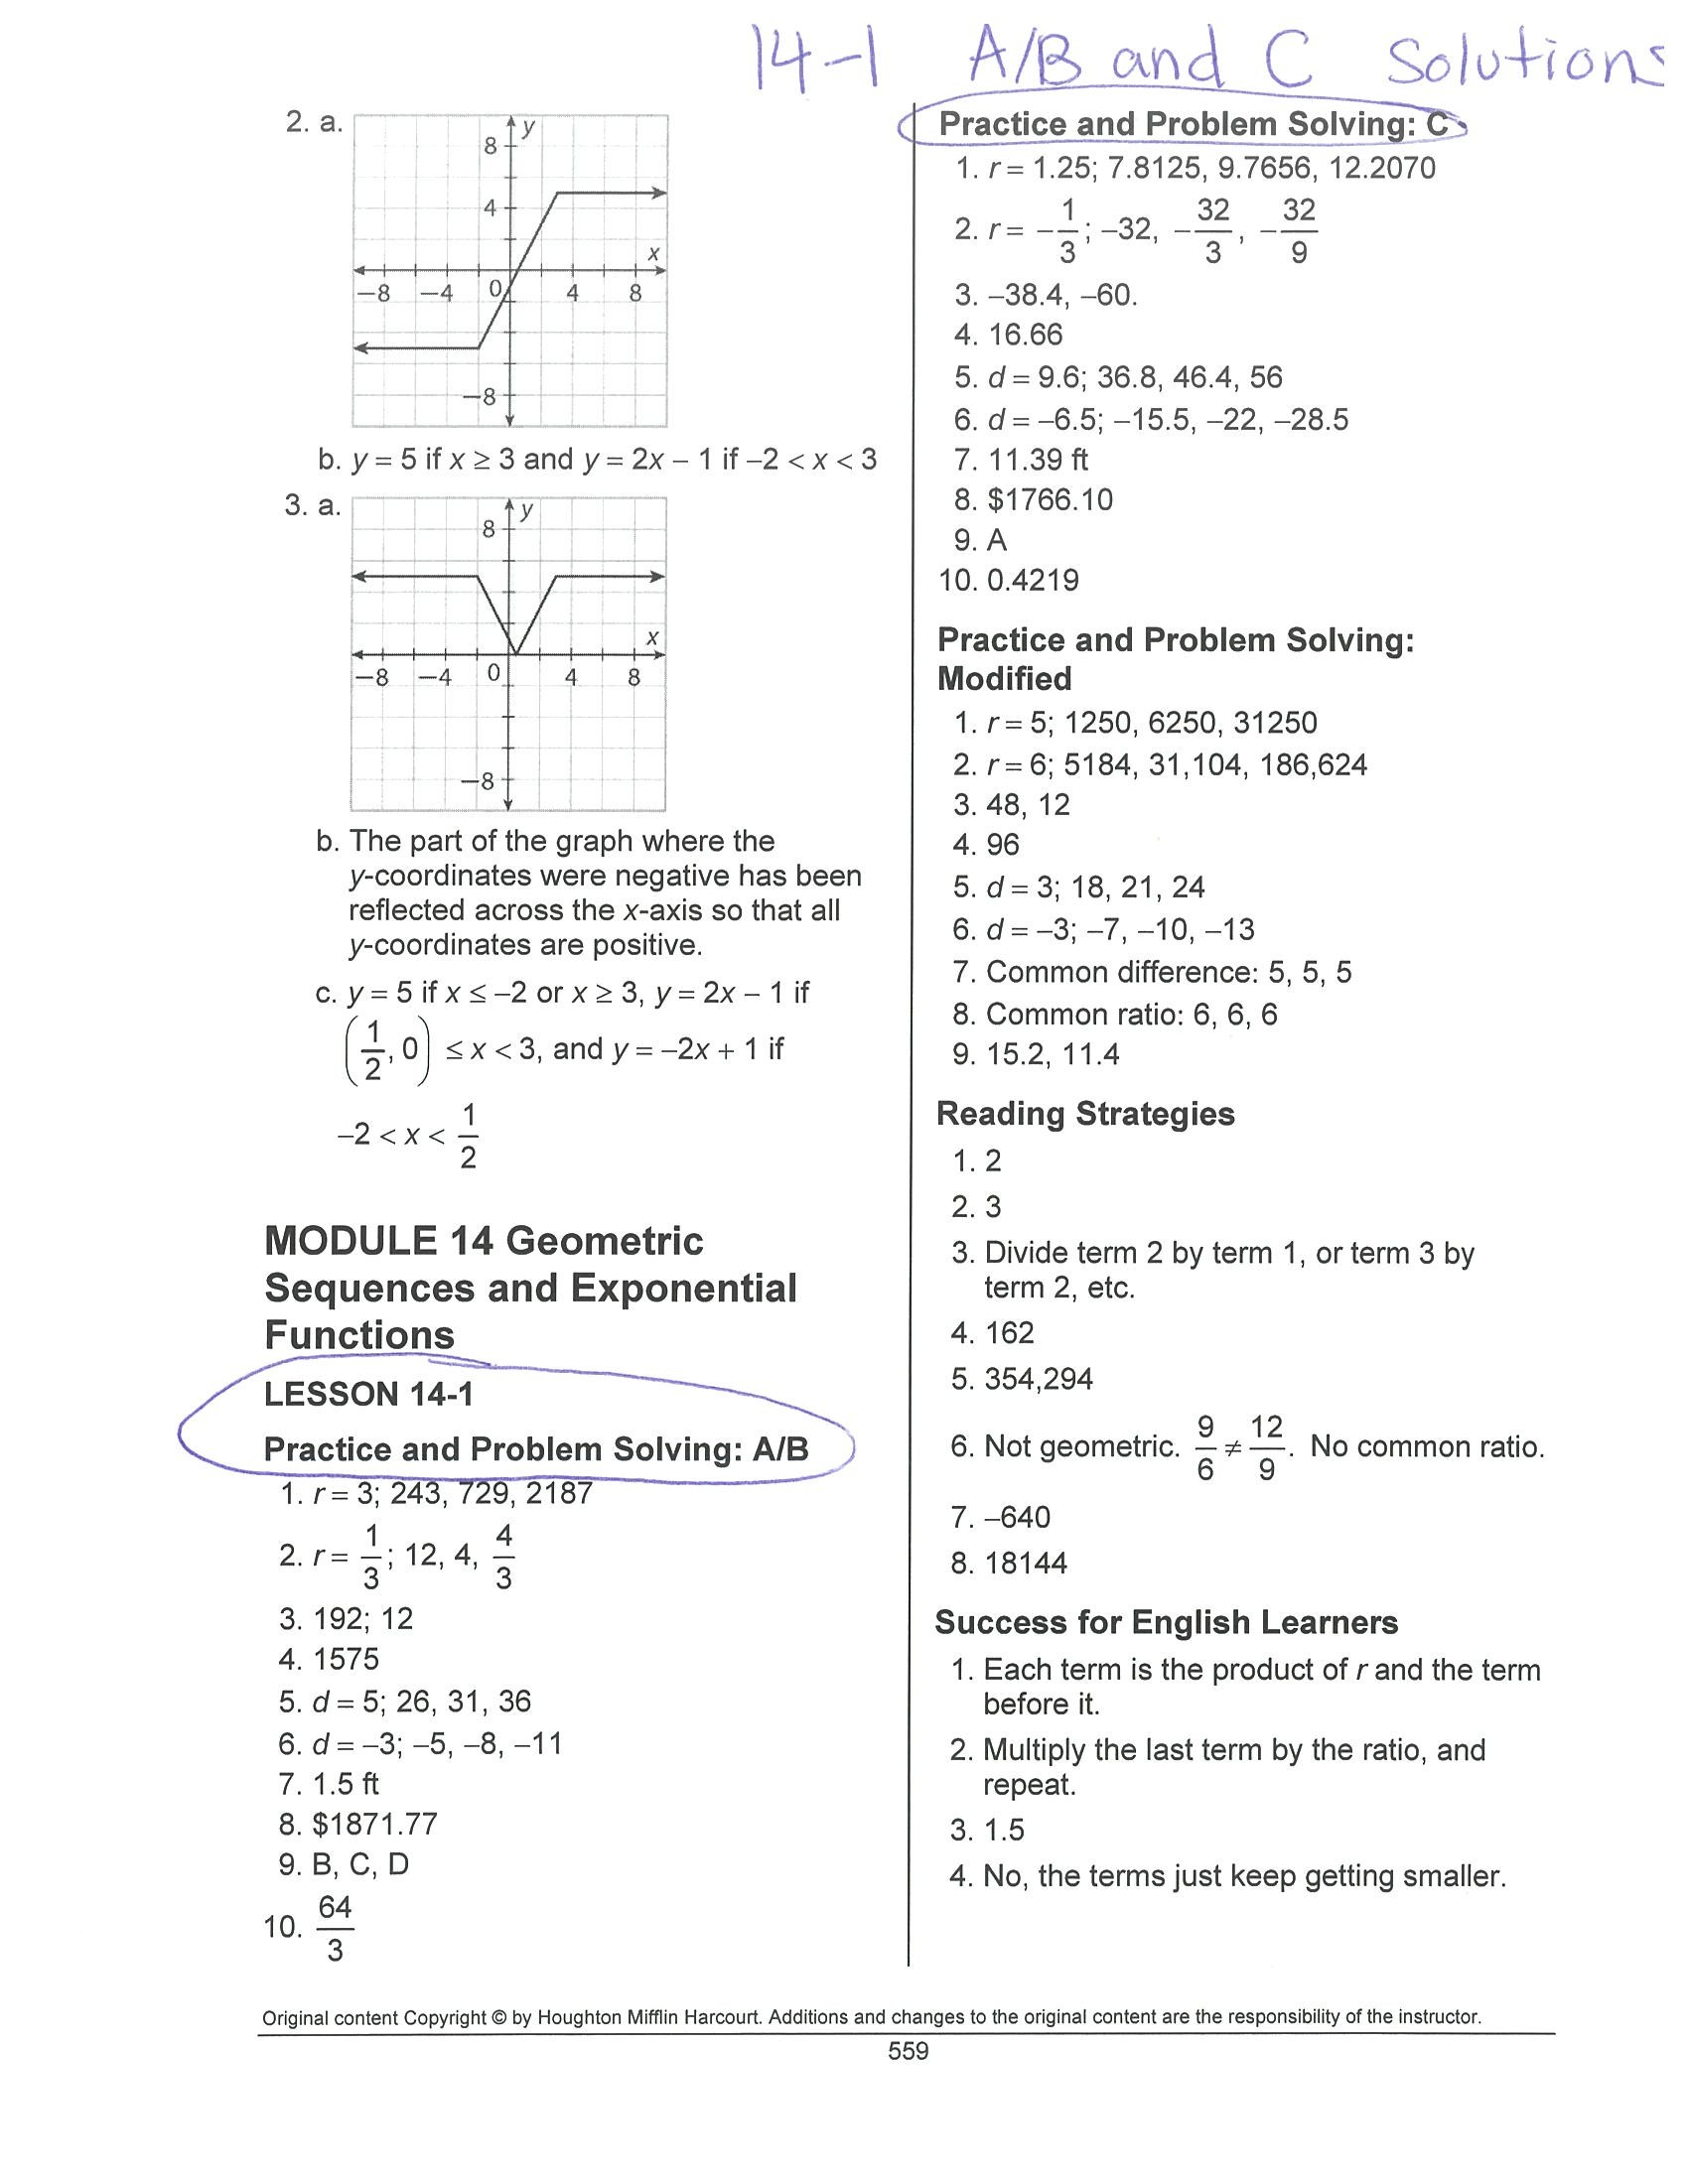 Worksheets Integrated Math 1 Worksheets south pasadena high school 14 1 practice ab and c solutions jpg